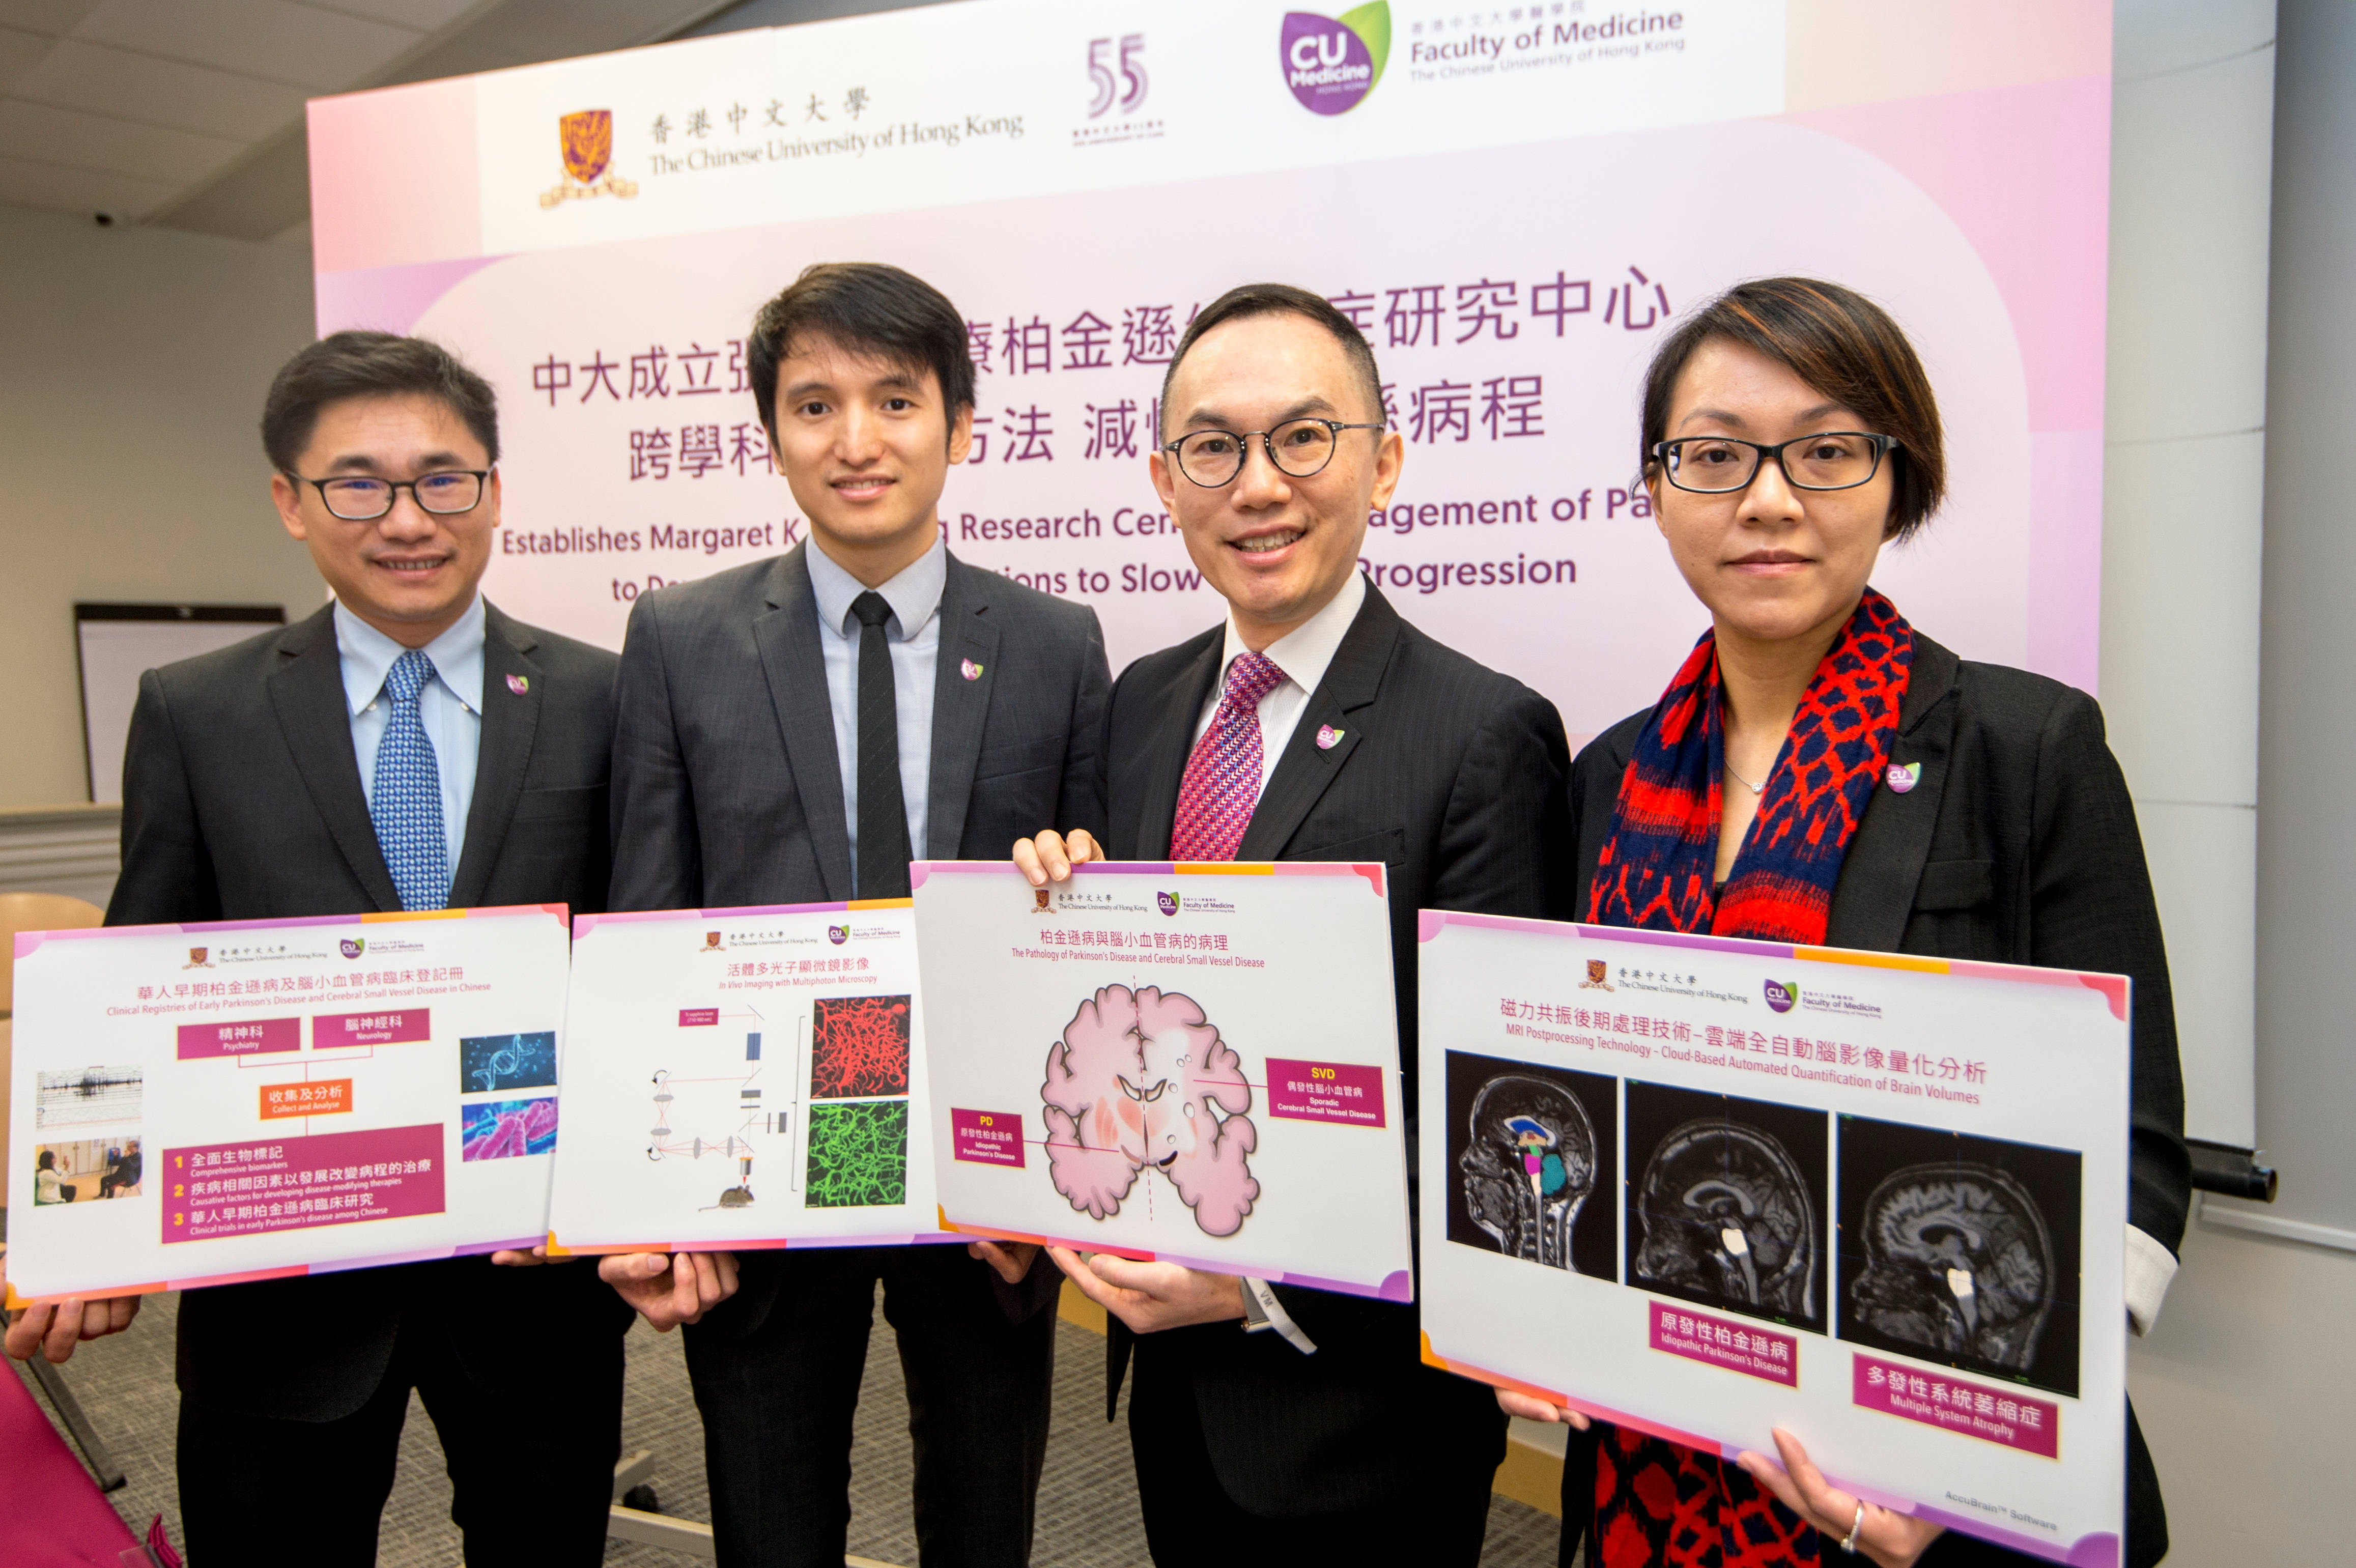 The Faculty of Medicine at CUHK establishes the Margaret K.L. Cheung Research Centre for Management of Parkinsonism to conduct transdisciplinary research that enables the discovery of therapeutics for preventing or slowing the progression of parkinsonism.